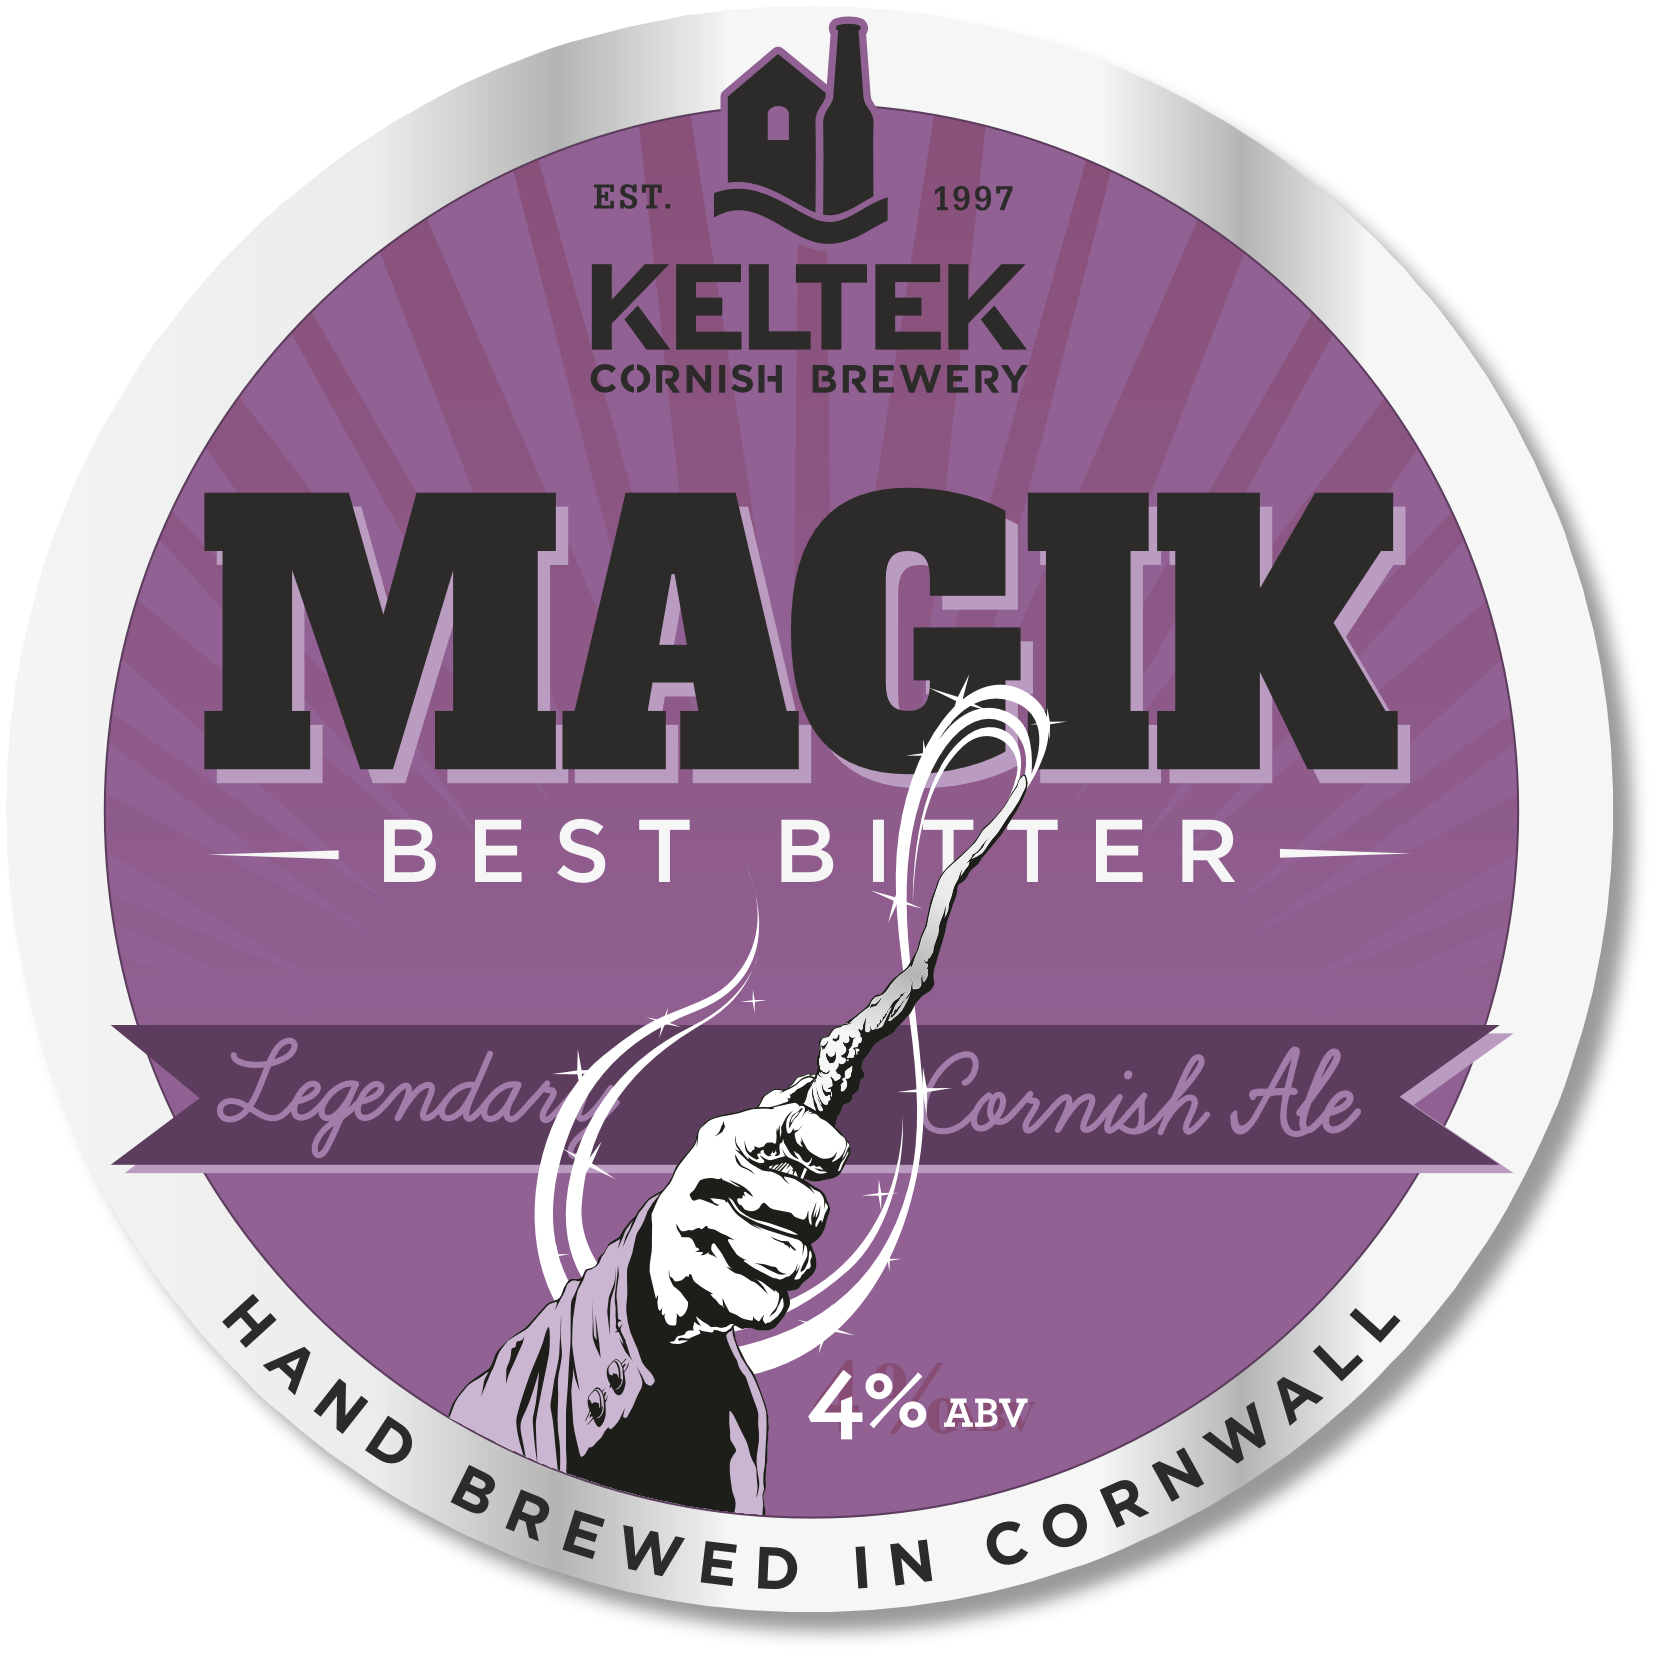 Magik 4.0% - Our flagship bitter, full of hops and malt flavours with gentle bitterness. Winner of the SIBA South West Champion Bitter Award – Twice!